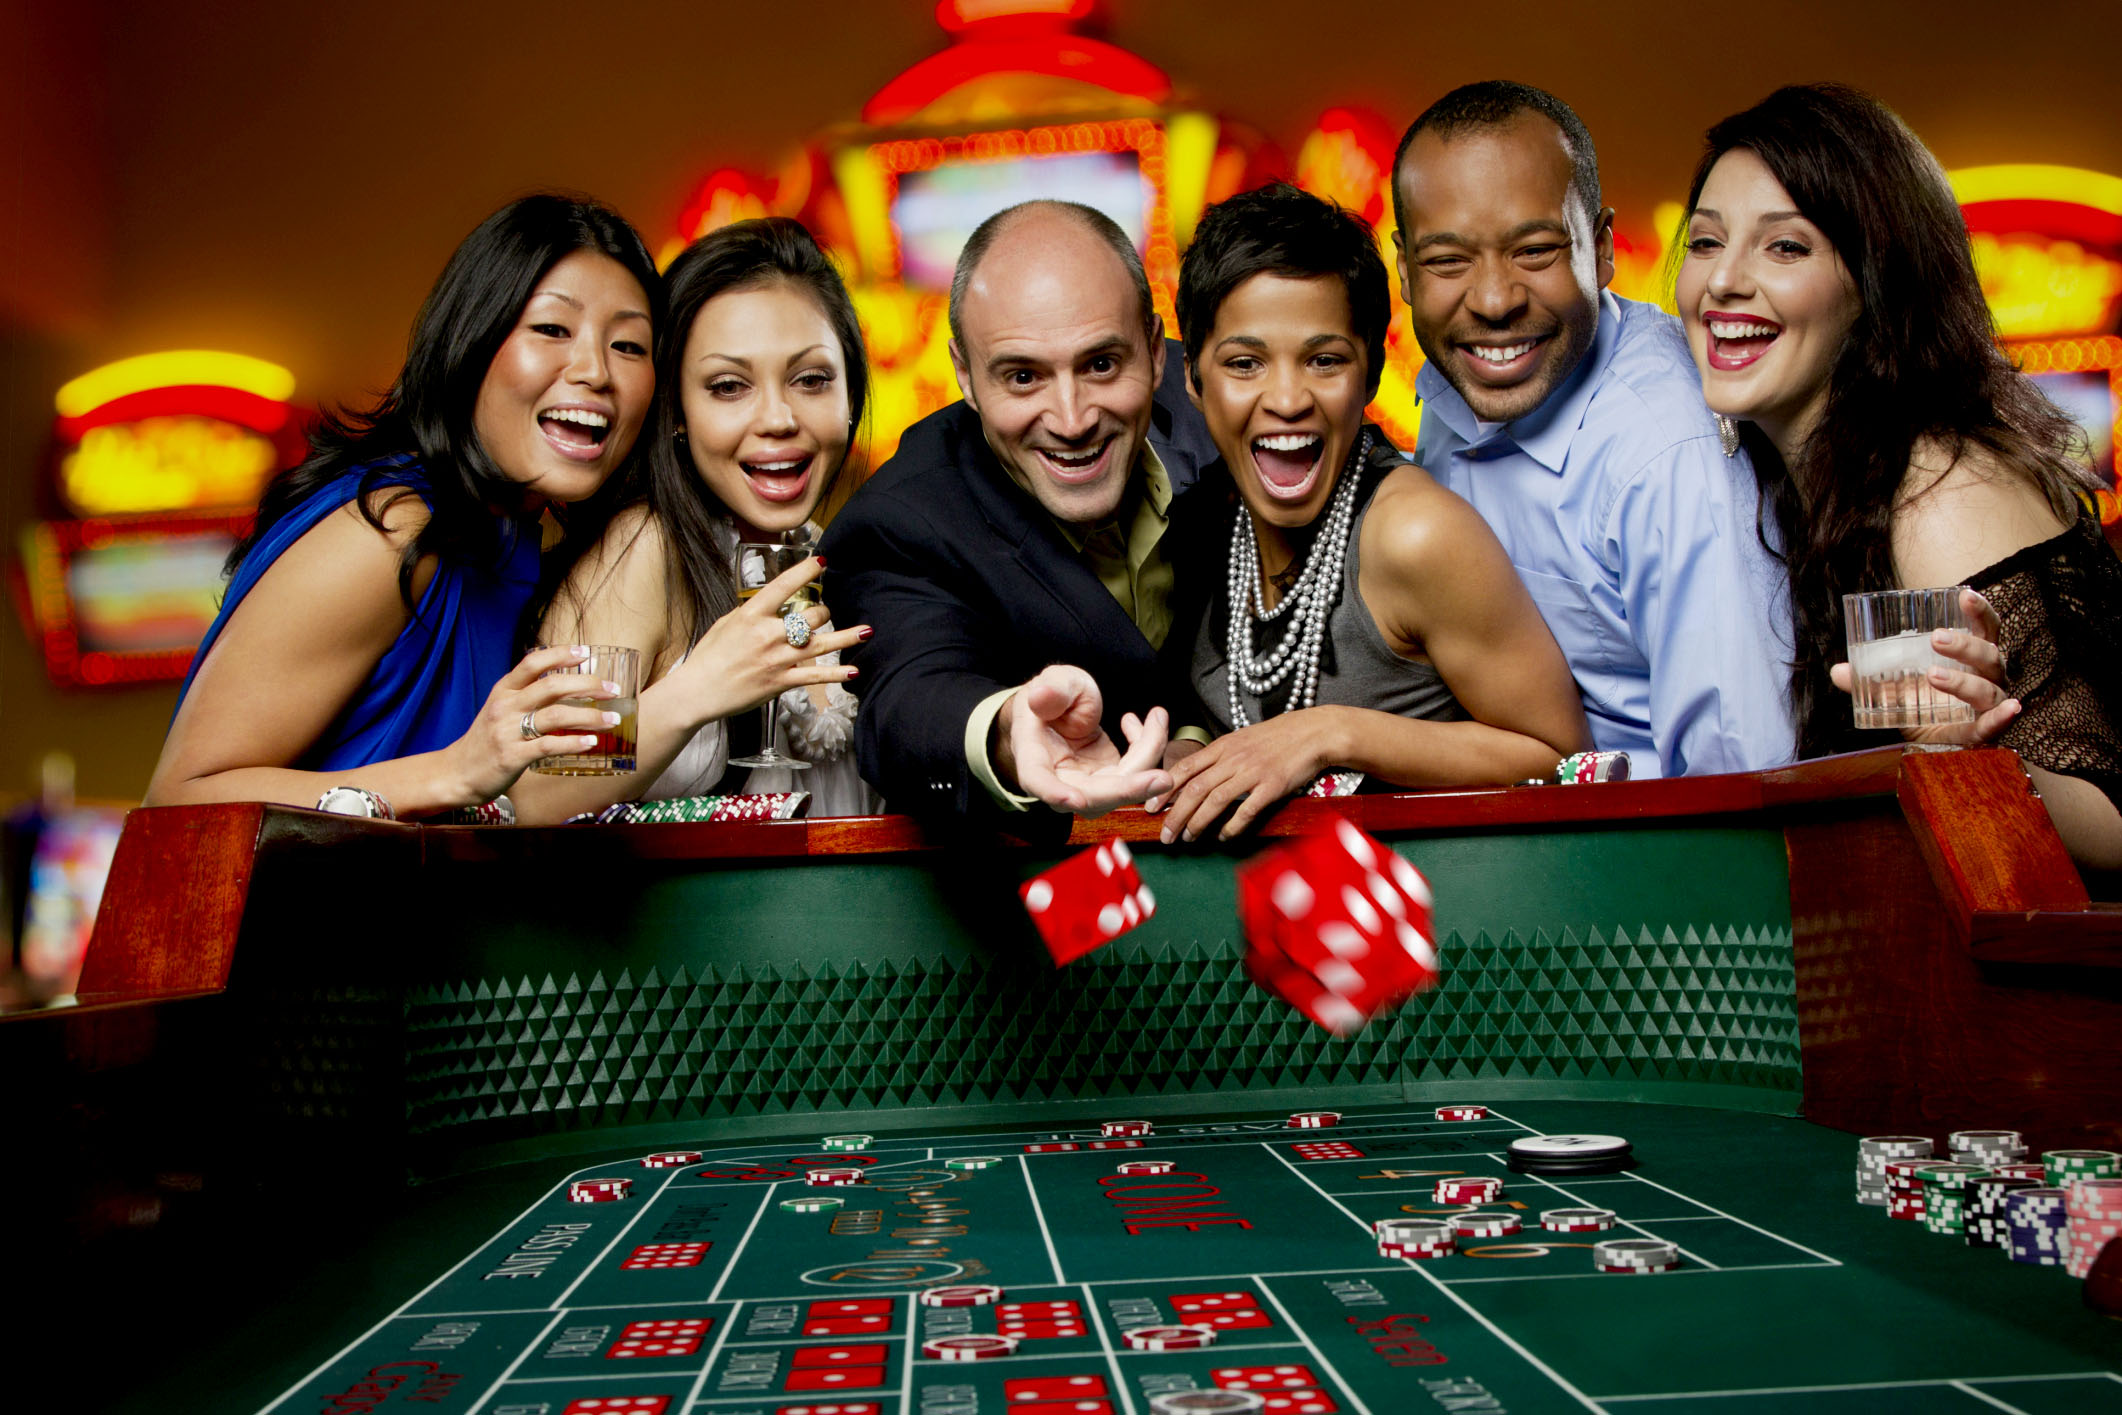 Greatest Poker http://tavolo-casino.net/video-poker-online-gratis-senza-registrazione-ecco-jacks-or-better/ corporation Bonuses